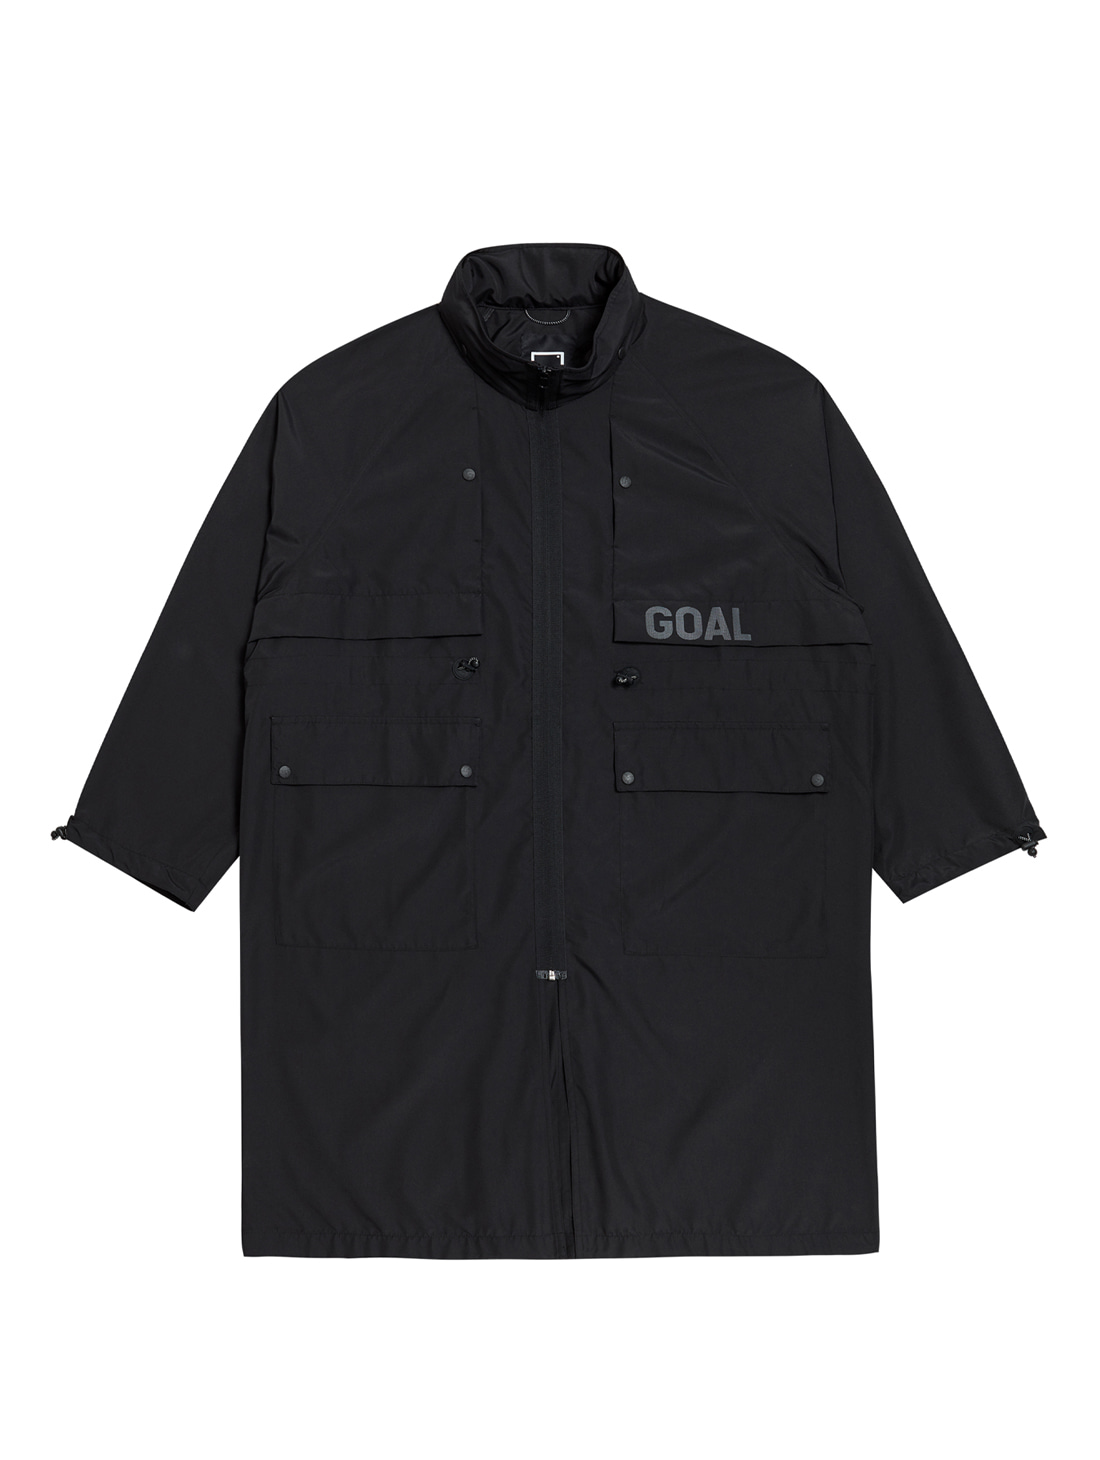 GOALSTUDIO LTG LONG JACKET - BLACK